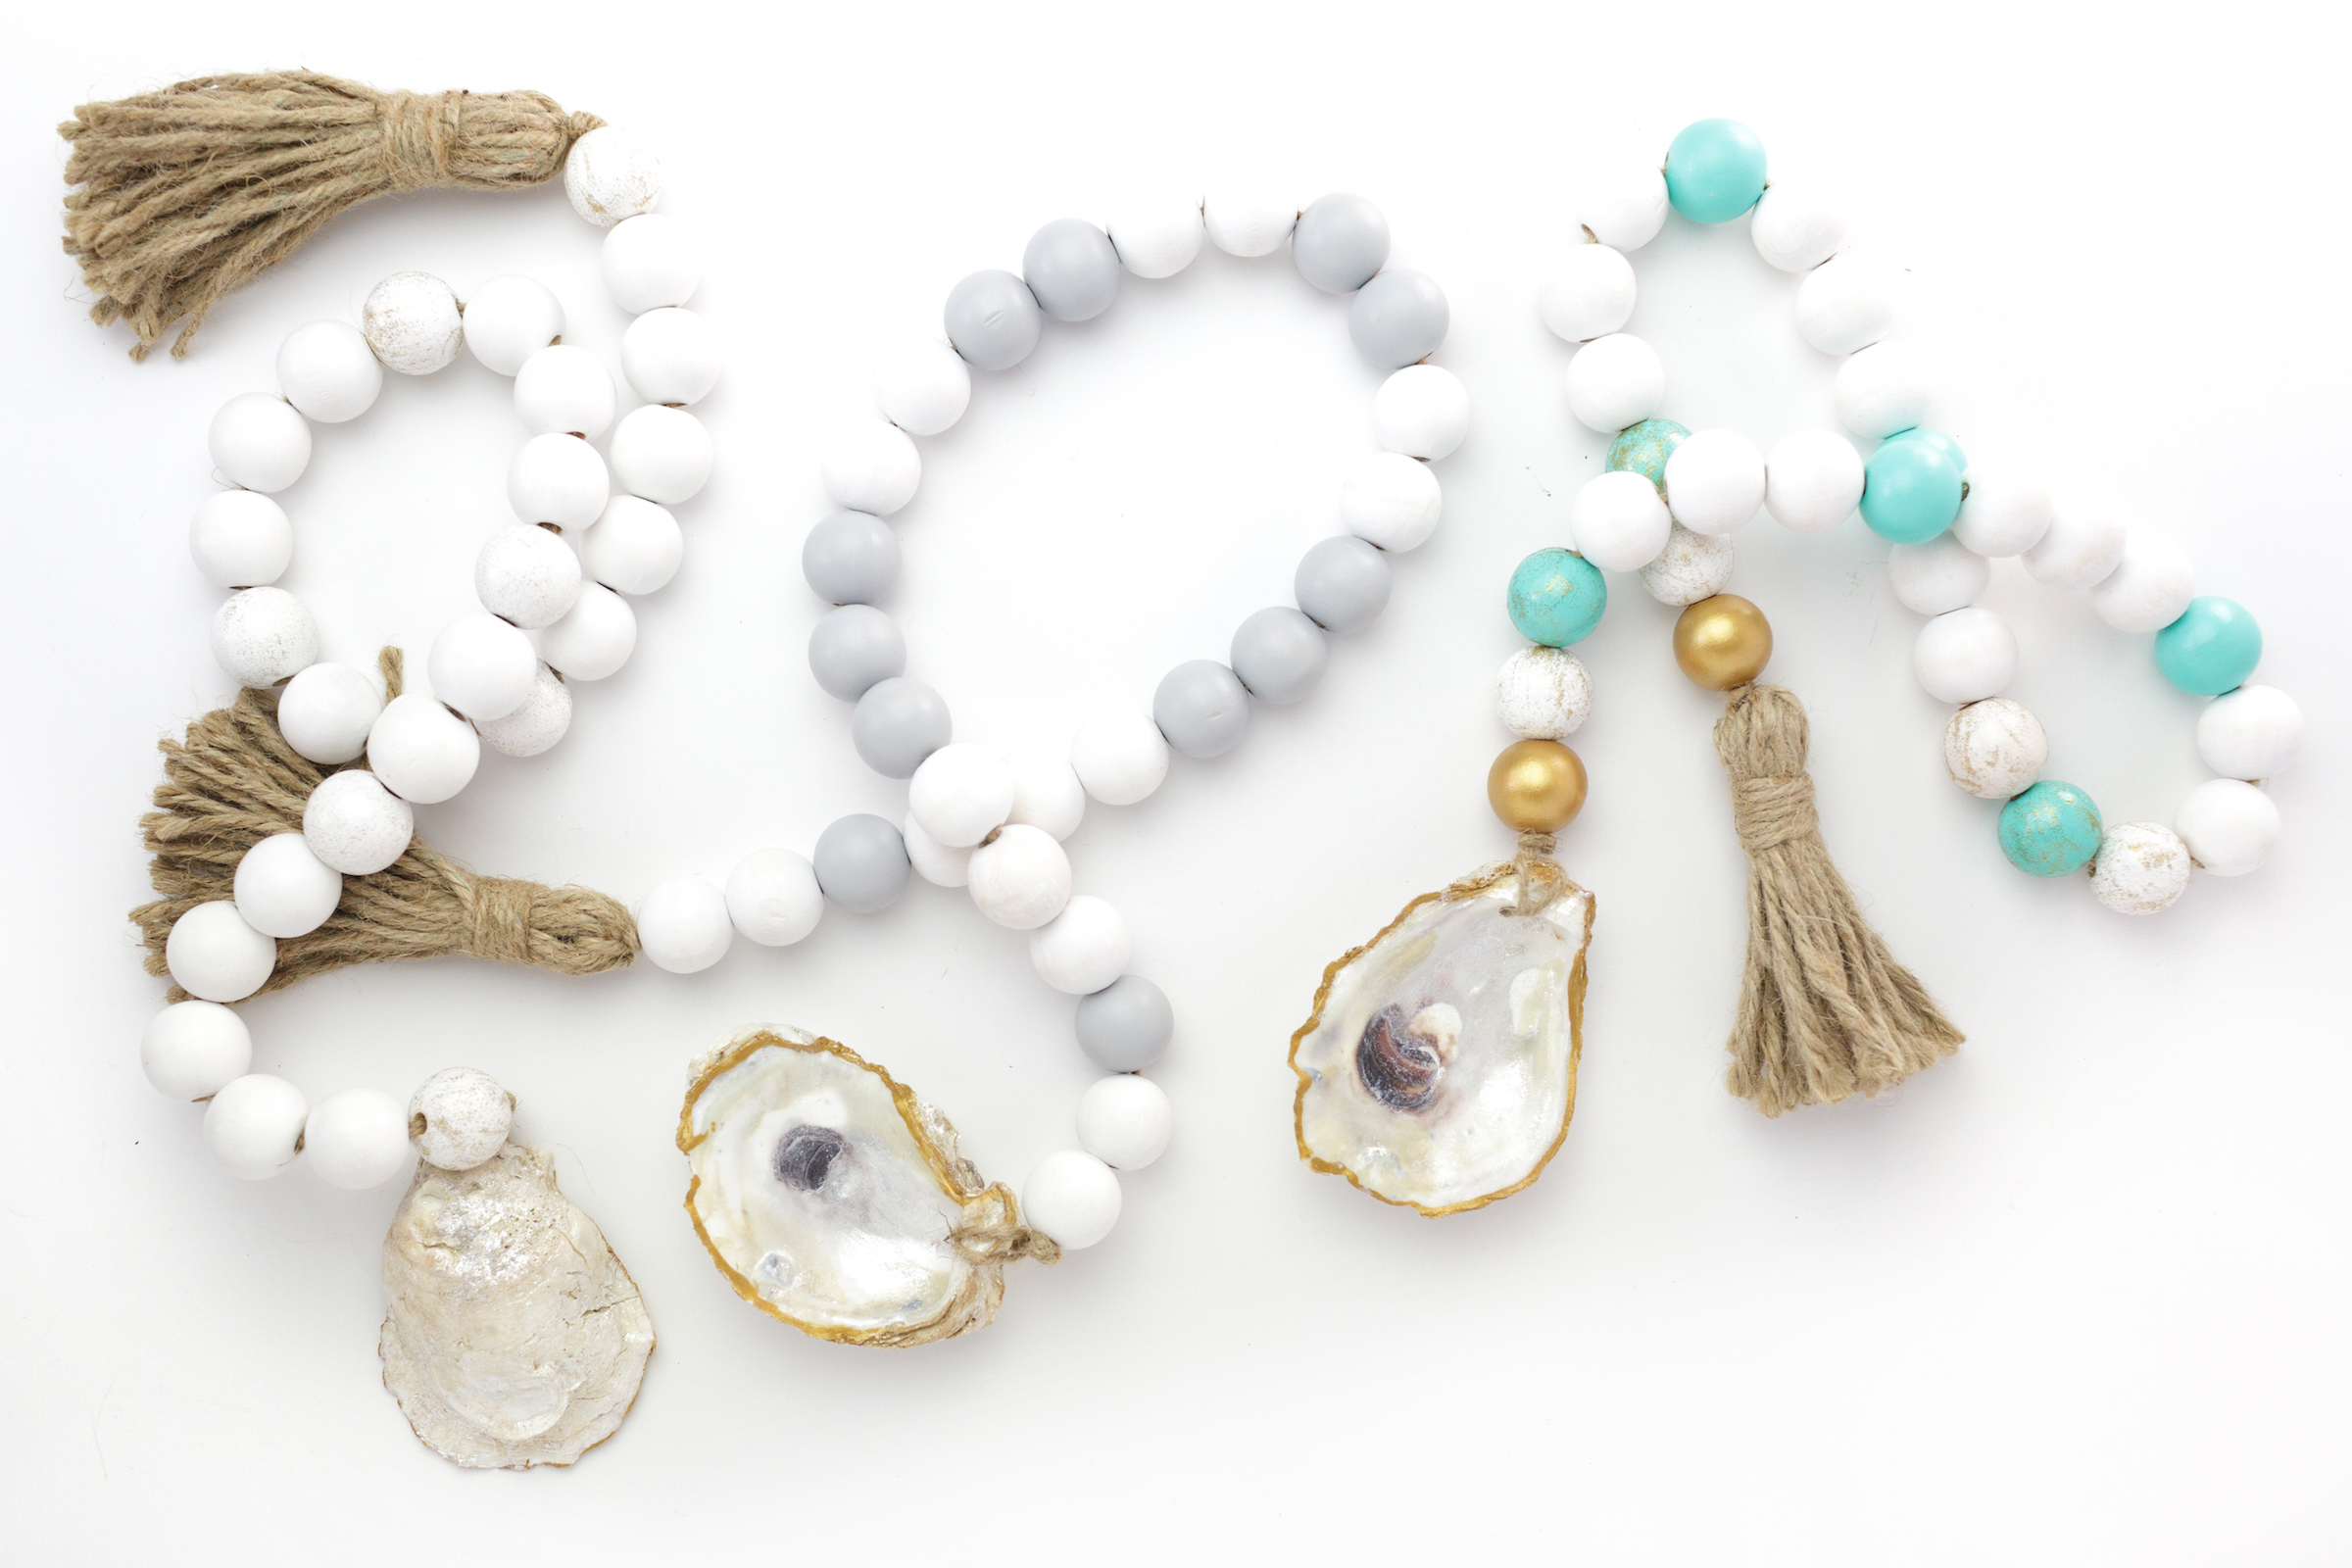 Coastal Garland in white, light grey, and turquoise.